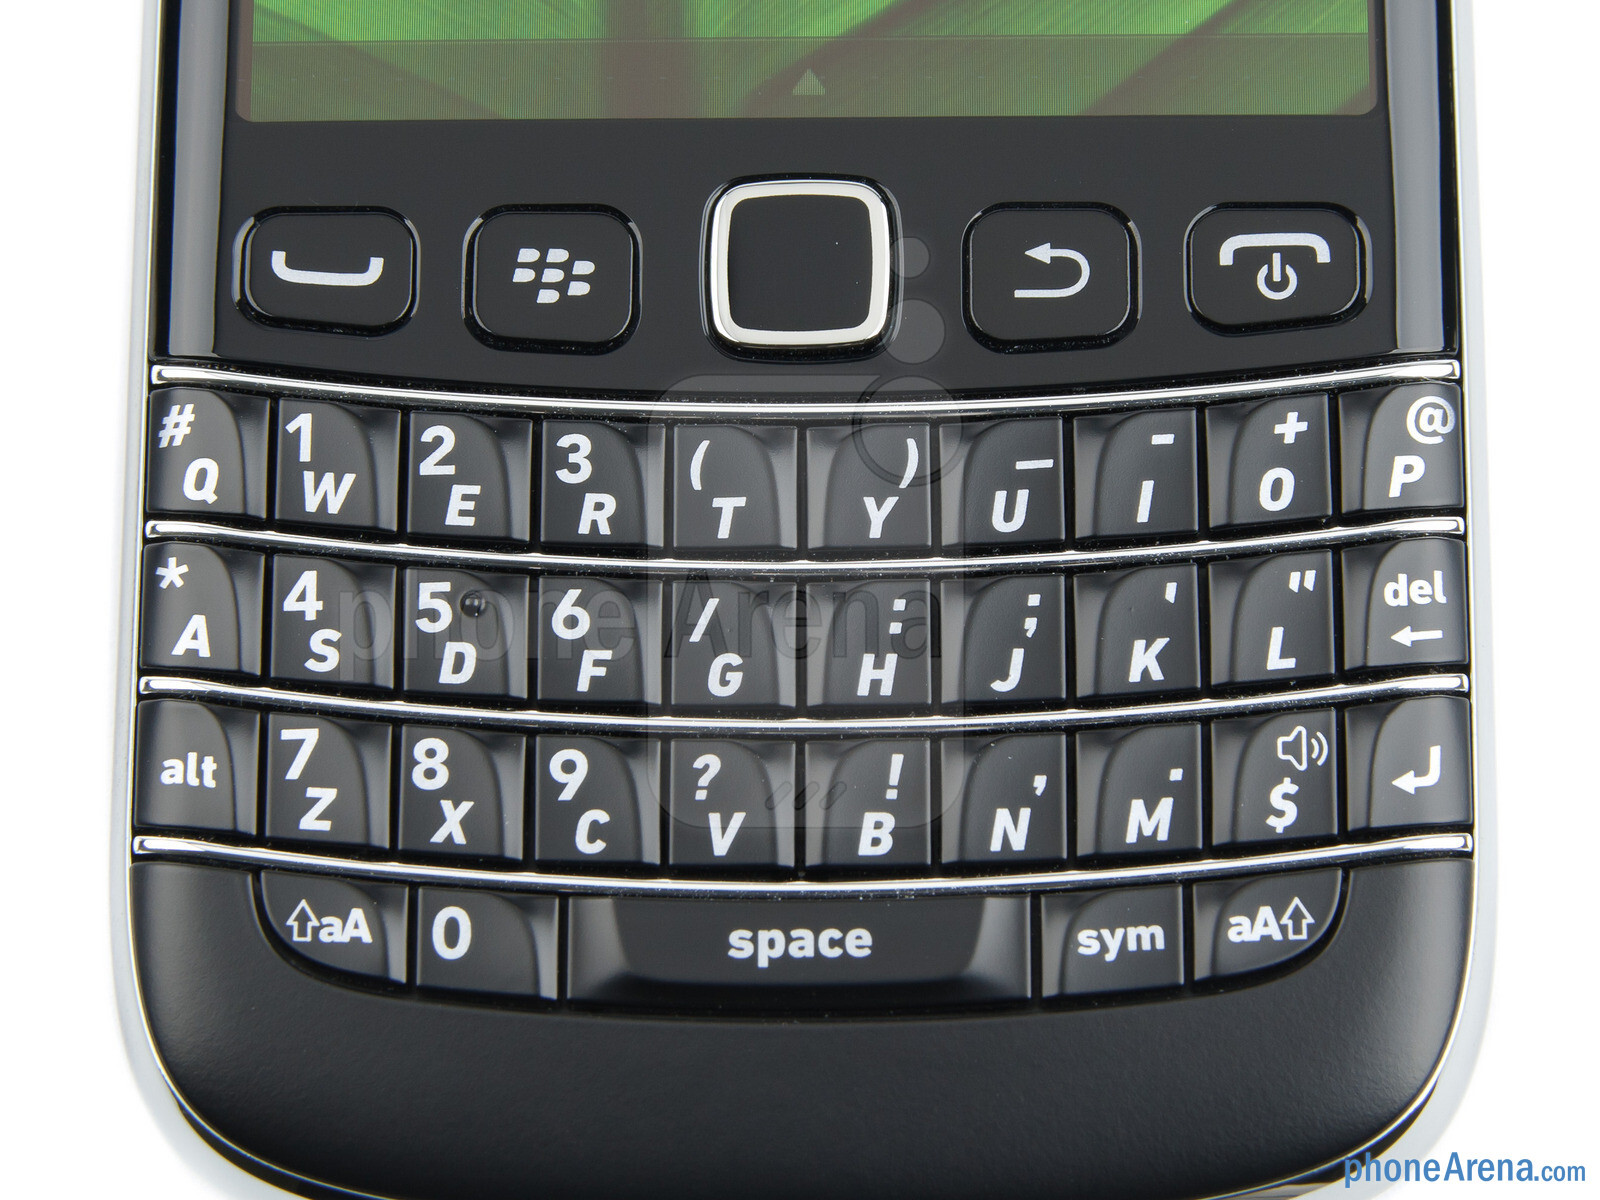 Compare Phones Side By Side >> RIM BlackBerry Bold 9790 Review - PhoneArena